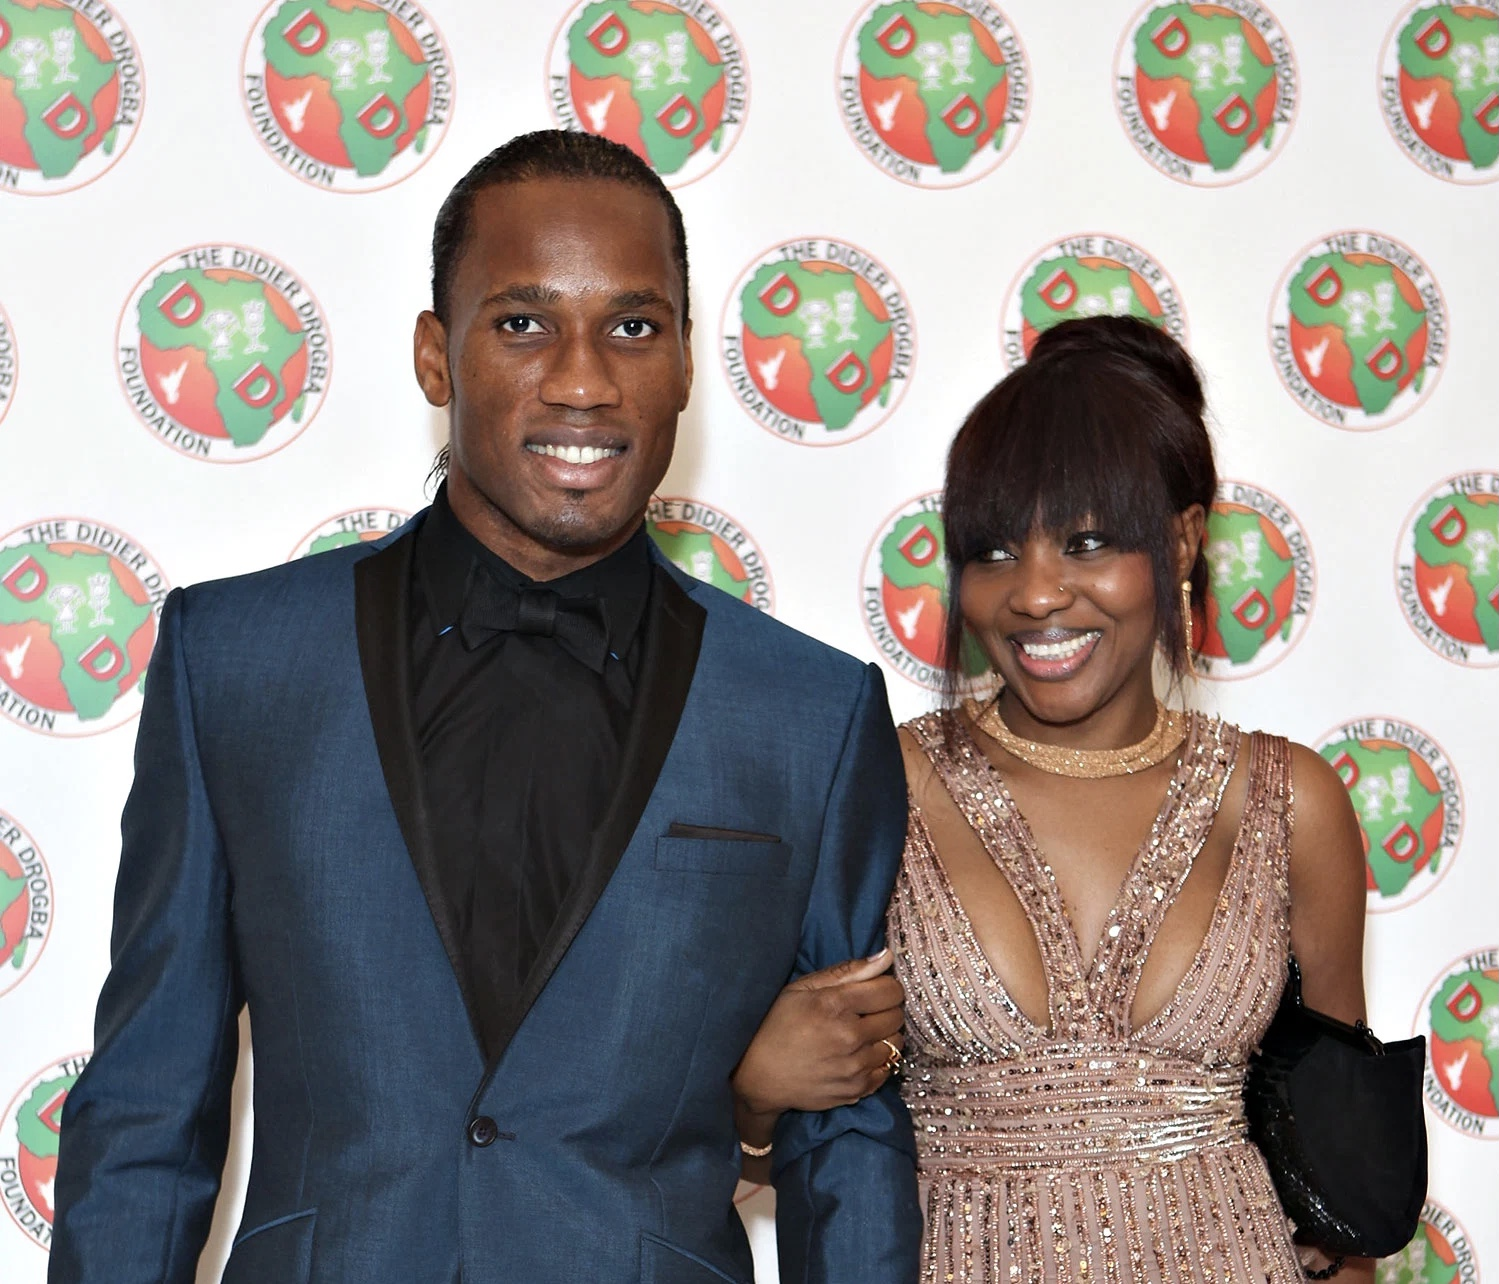 didier-drogba-and-wife-divorce-after-20-years-together